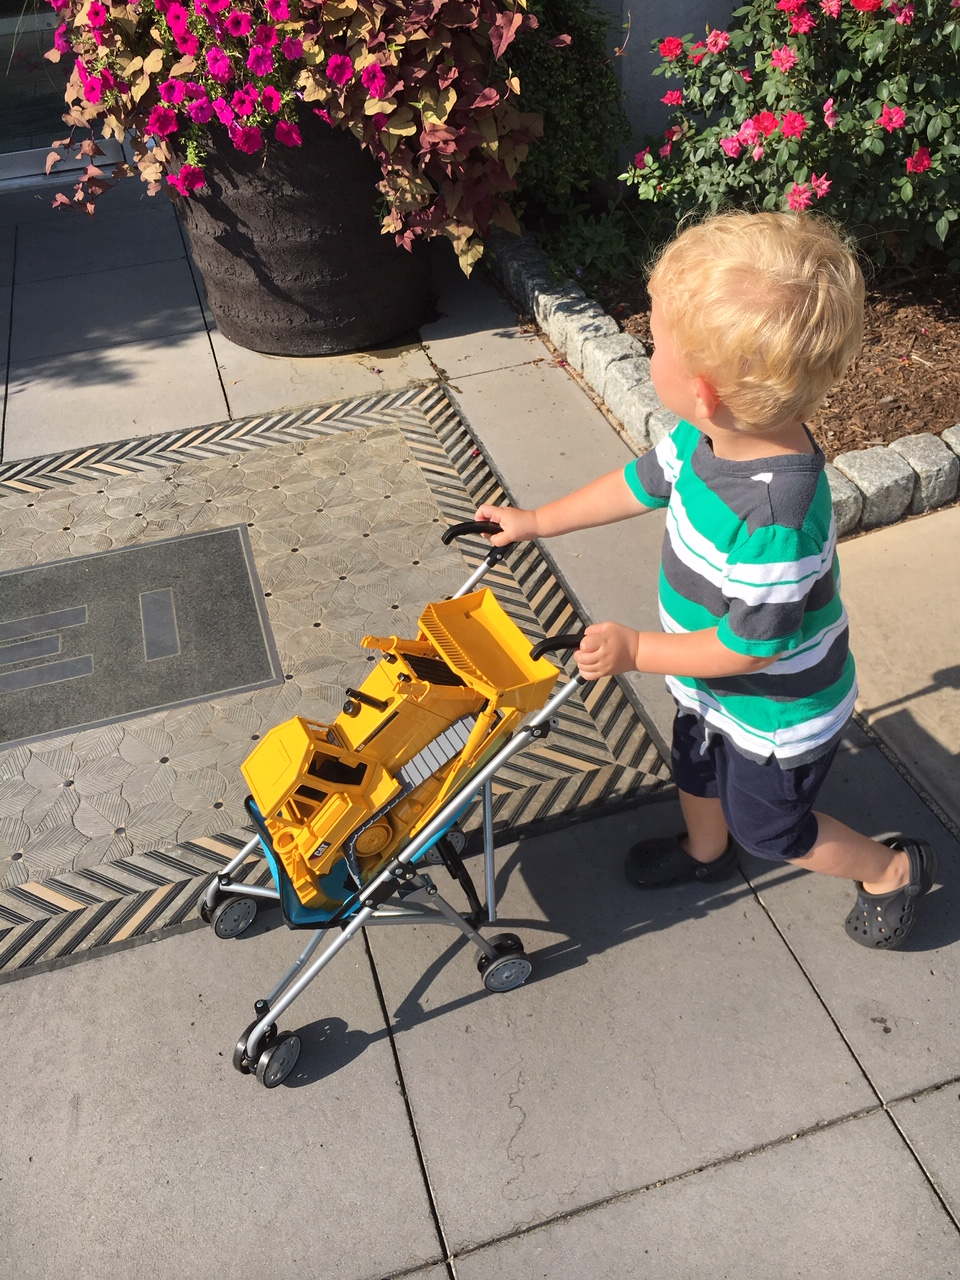 A toddler age boy pushes his bright yellow bulldozer in a toy stroller as he walks through the Pike and Rose neighborhood.